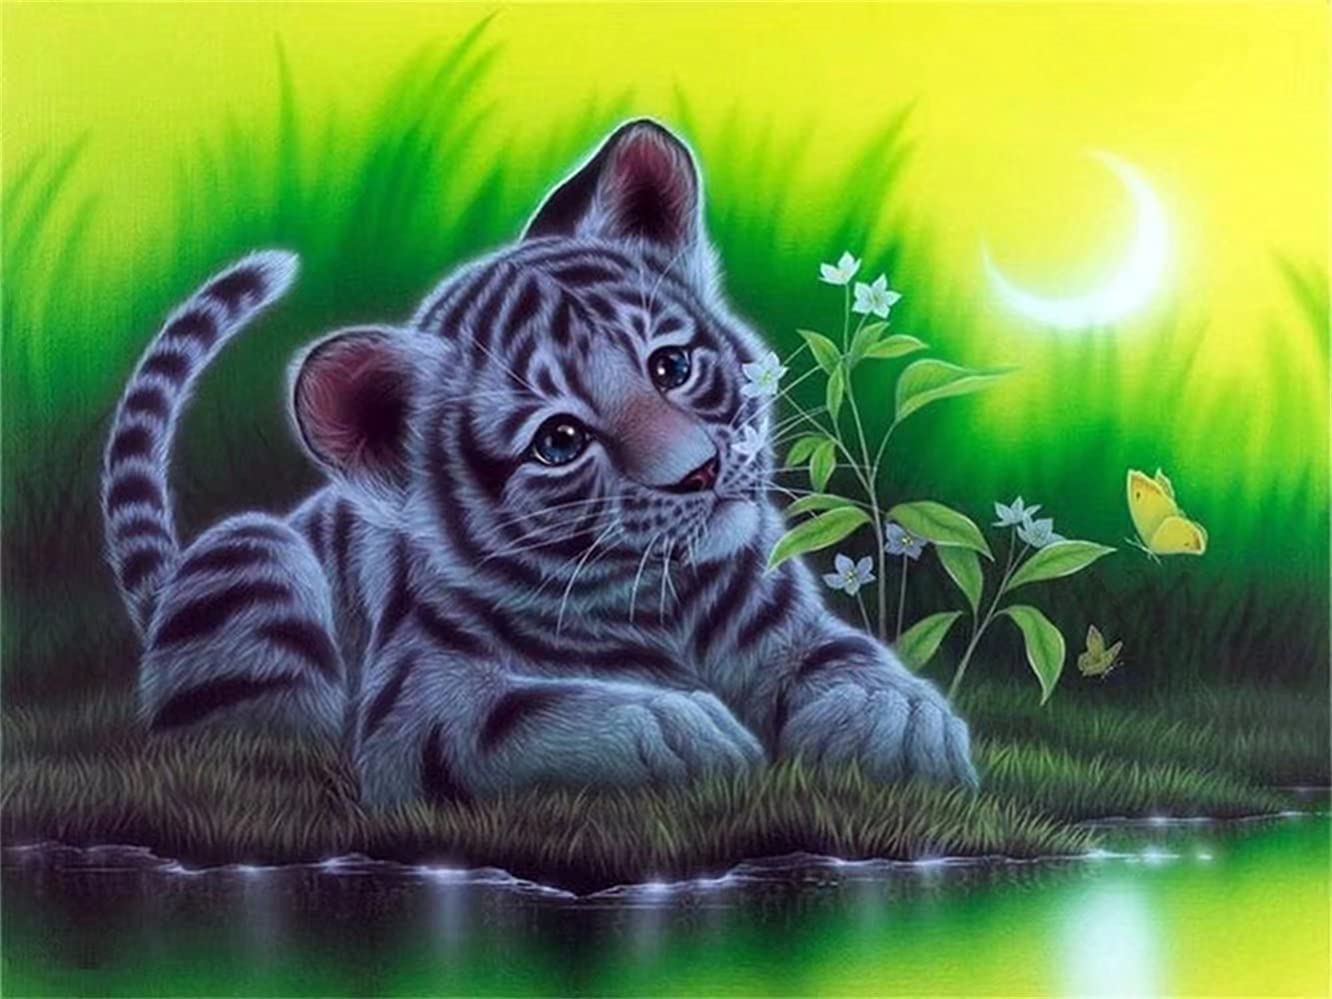 DIY 5D Diamond Embroidery Oil Painting, Little Tiger on River Diamond Painting Cross Stitch Kits Diamond Mosaic Home Decor